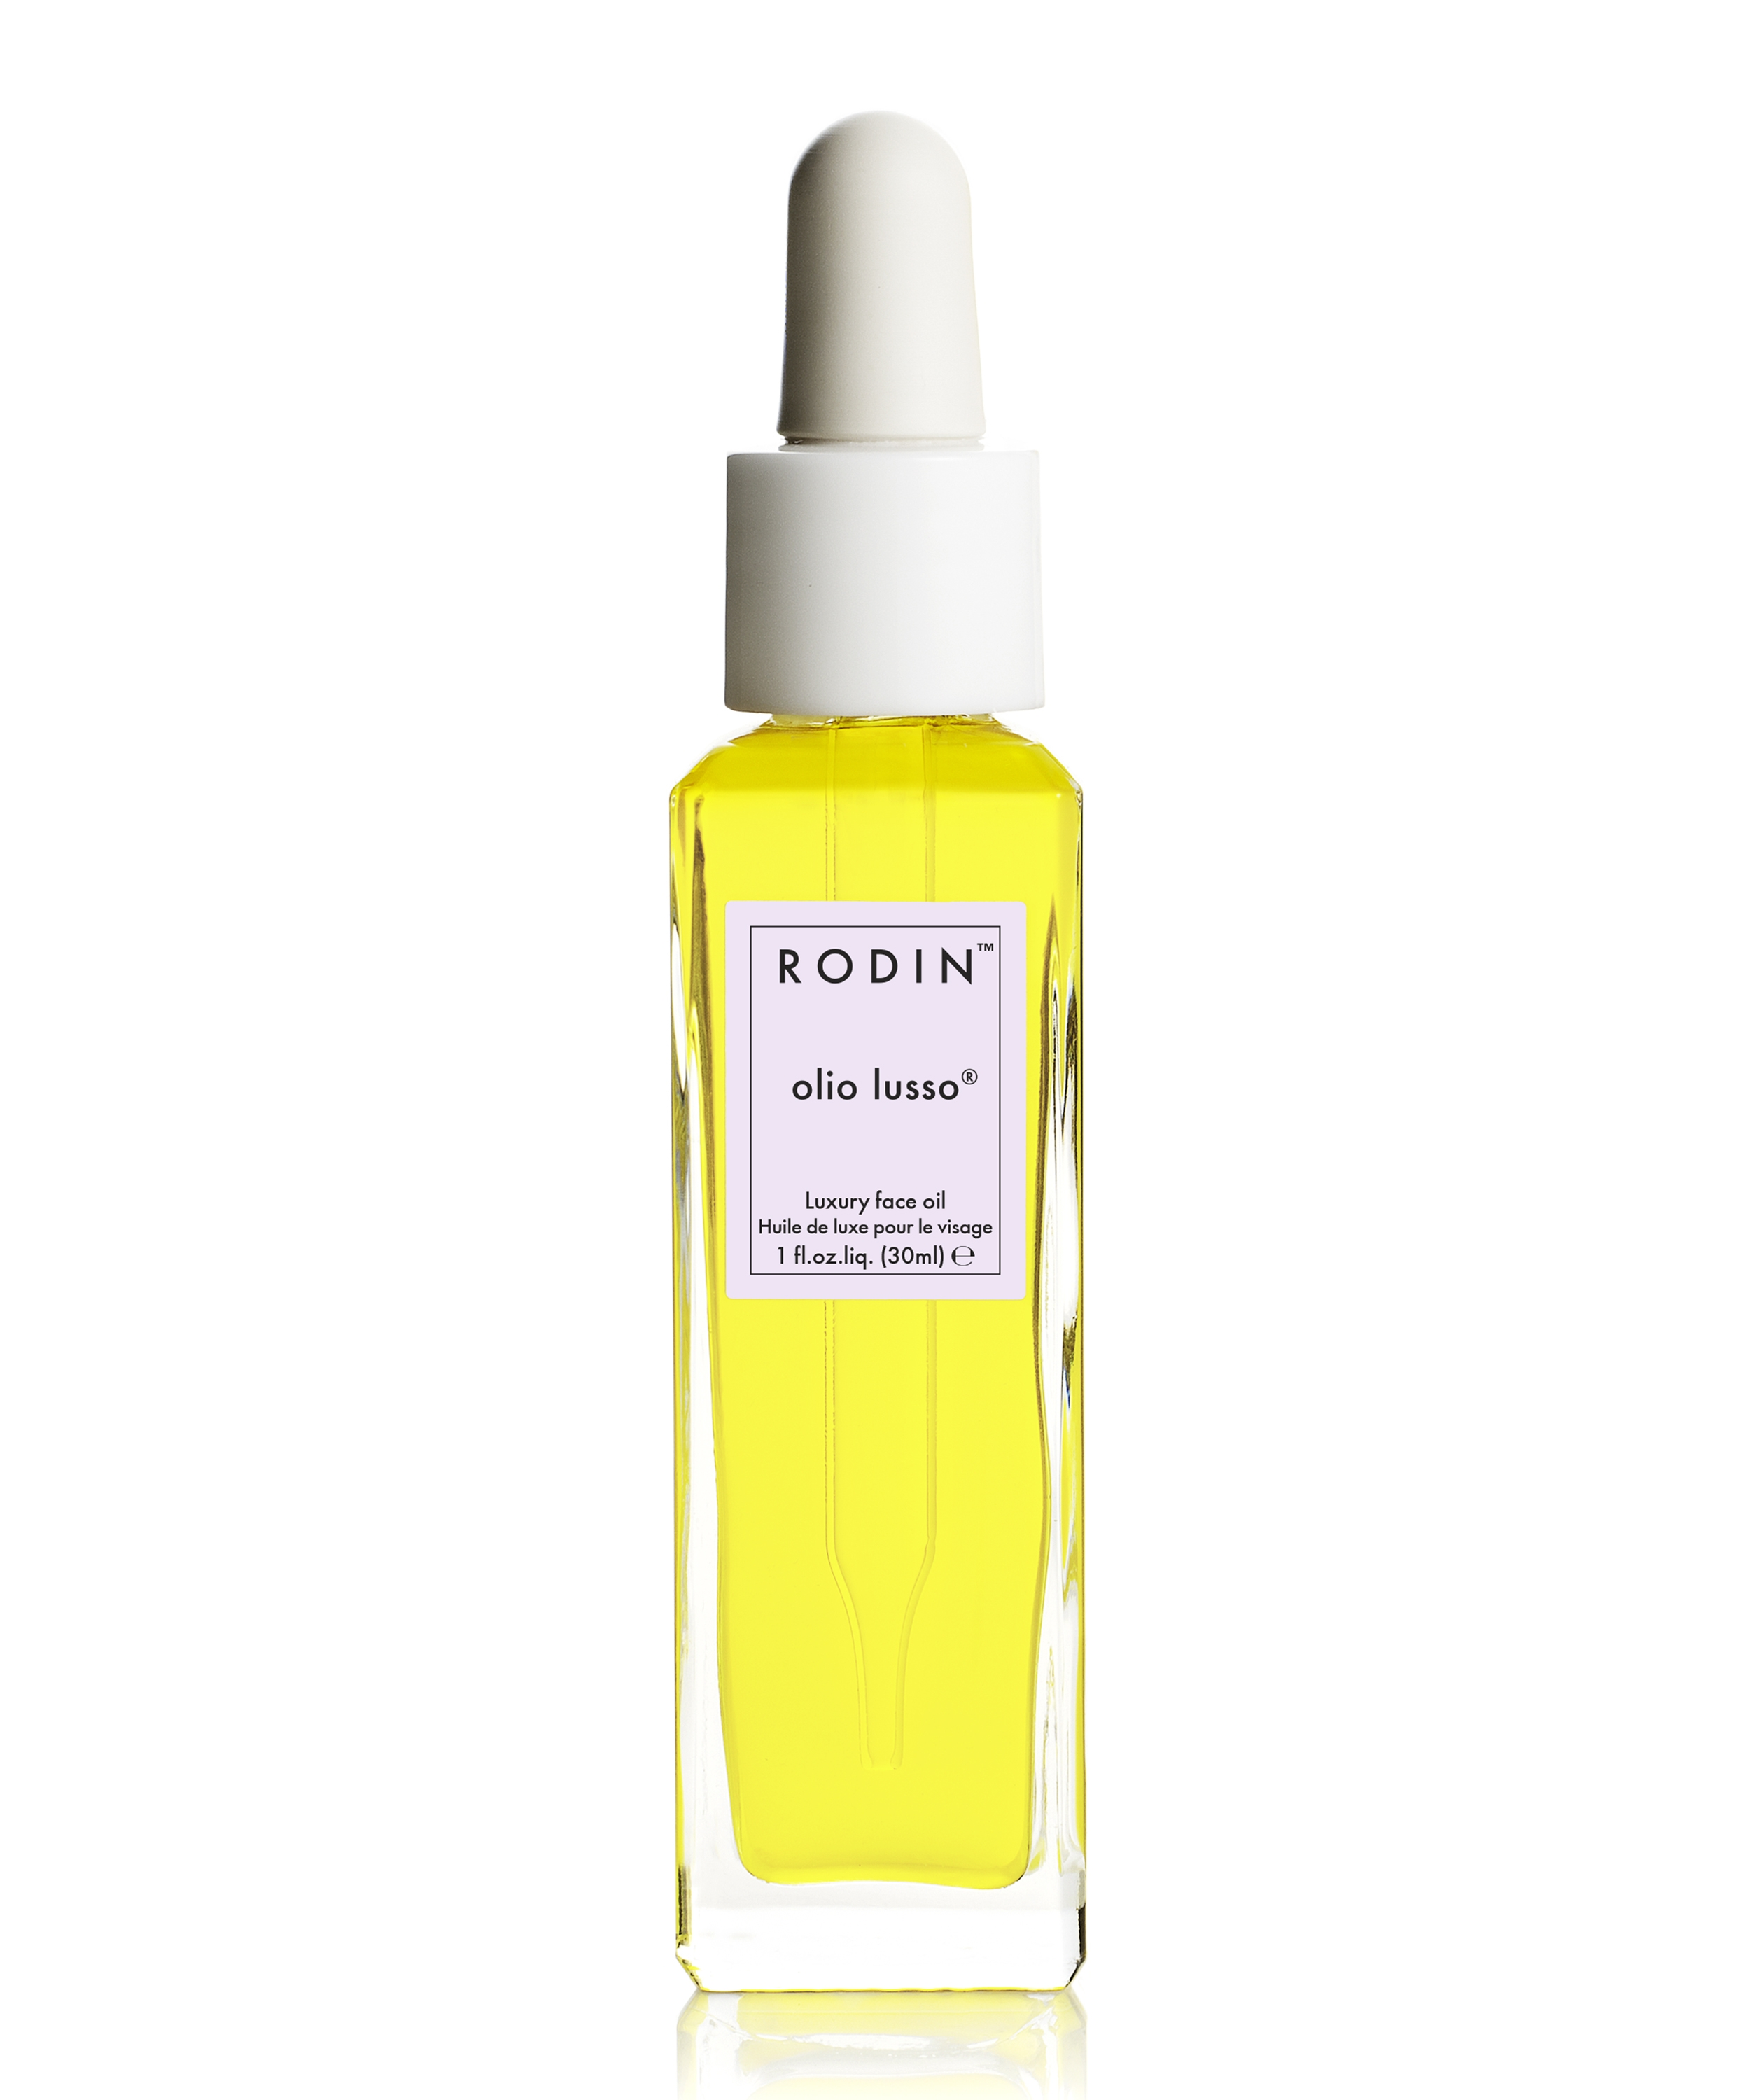 Rodin Lavender Absolute luxury face oil, £105, libertylondon.com